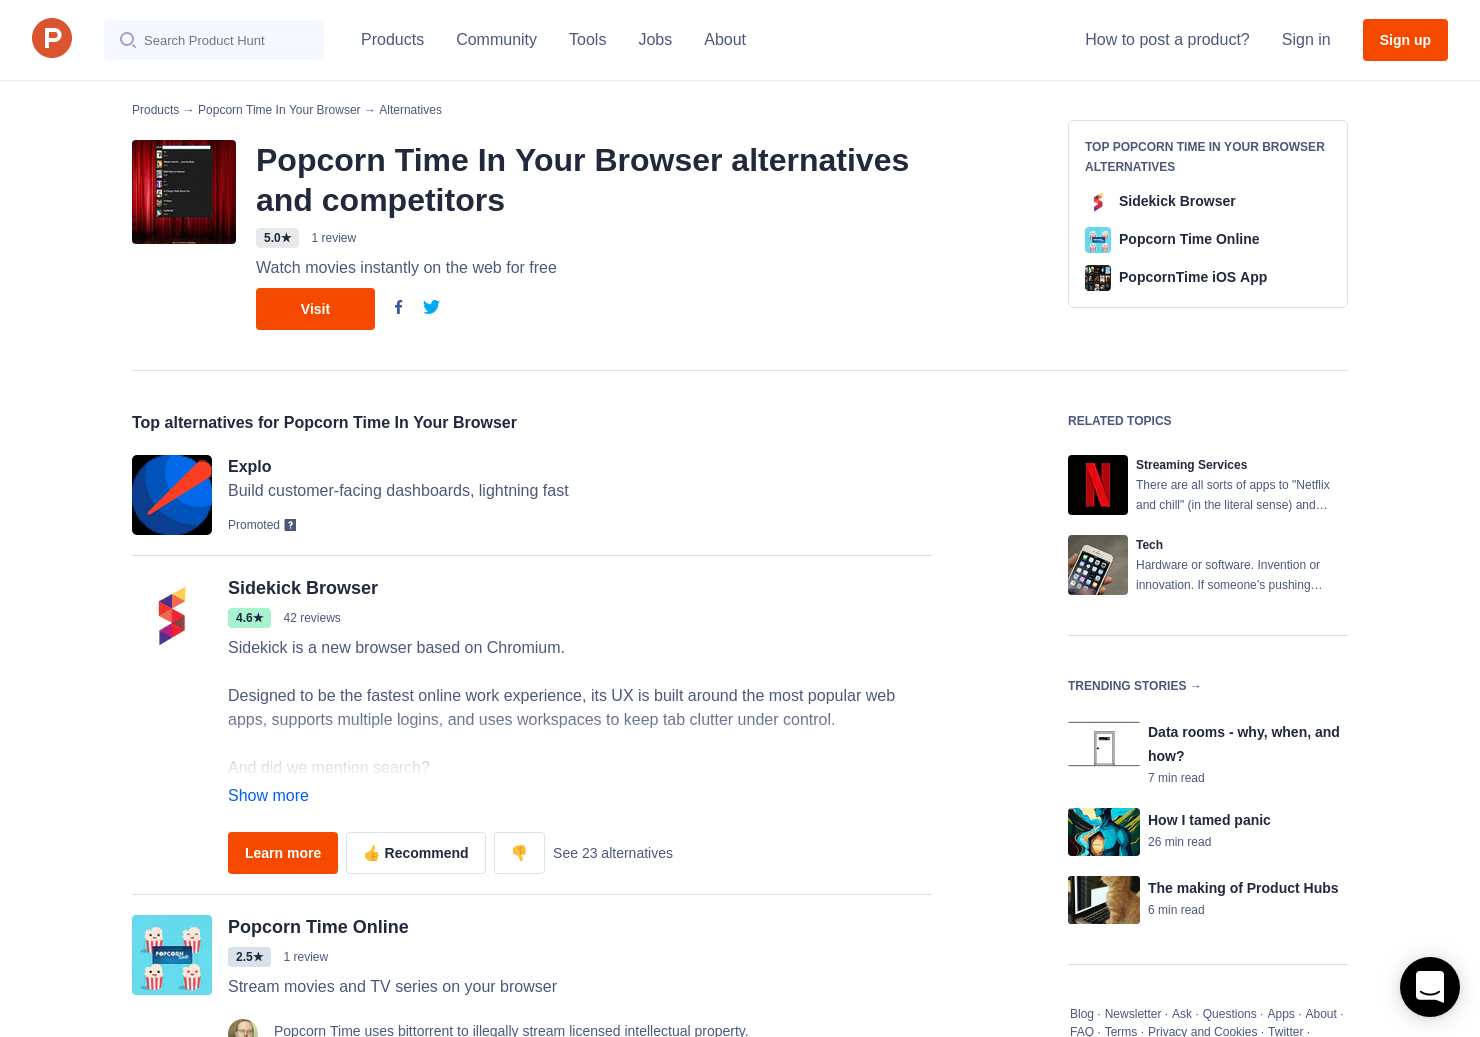 7 Alternatives to Popcorn Time In Your Browser | Product Hunt